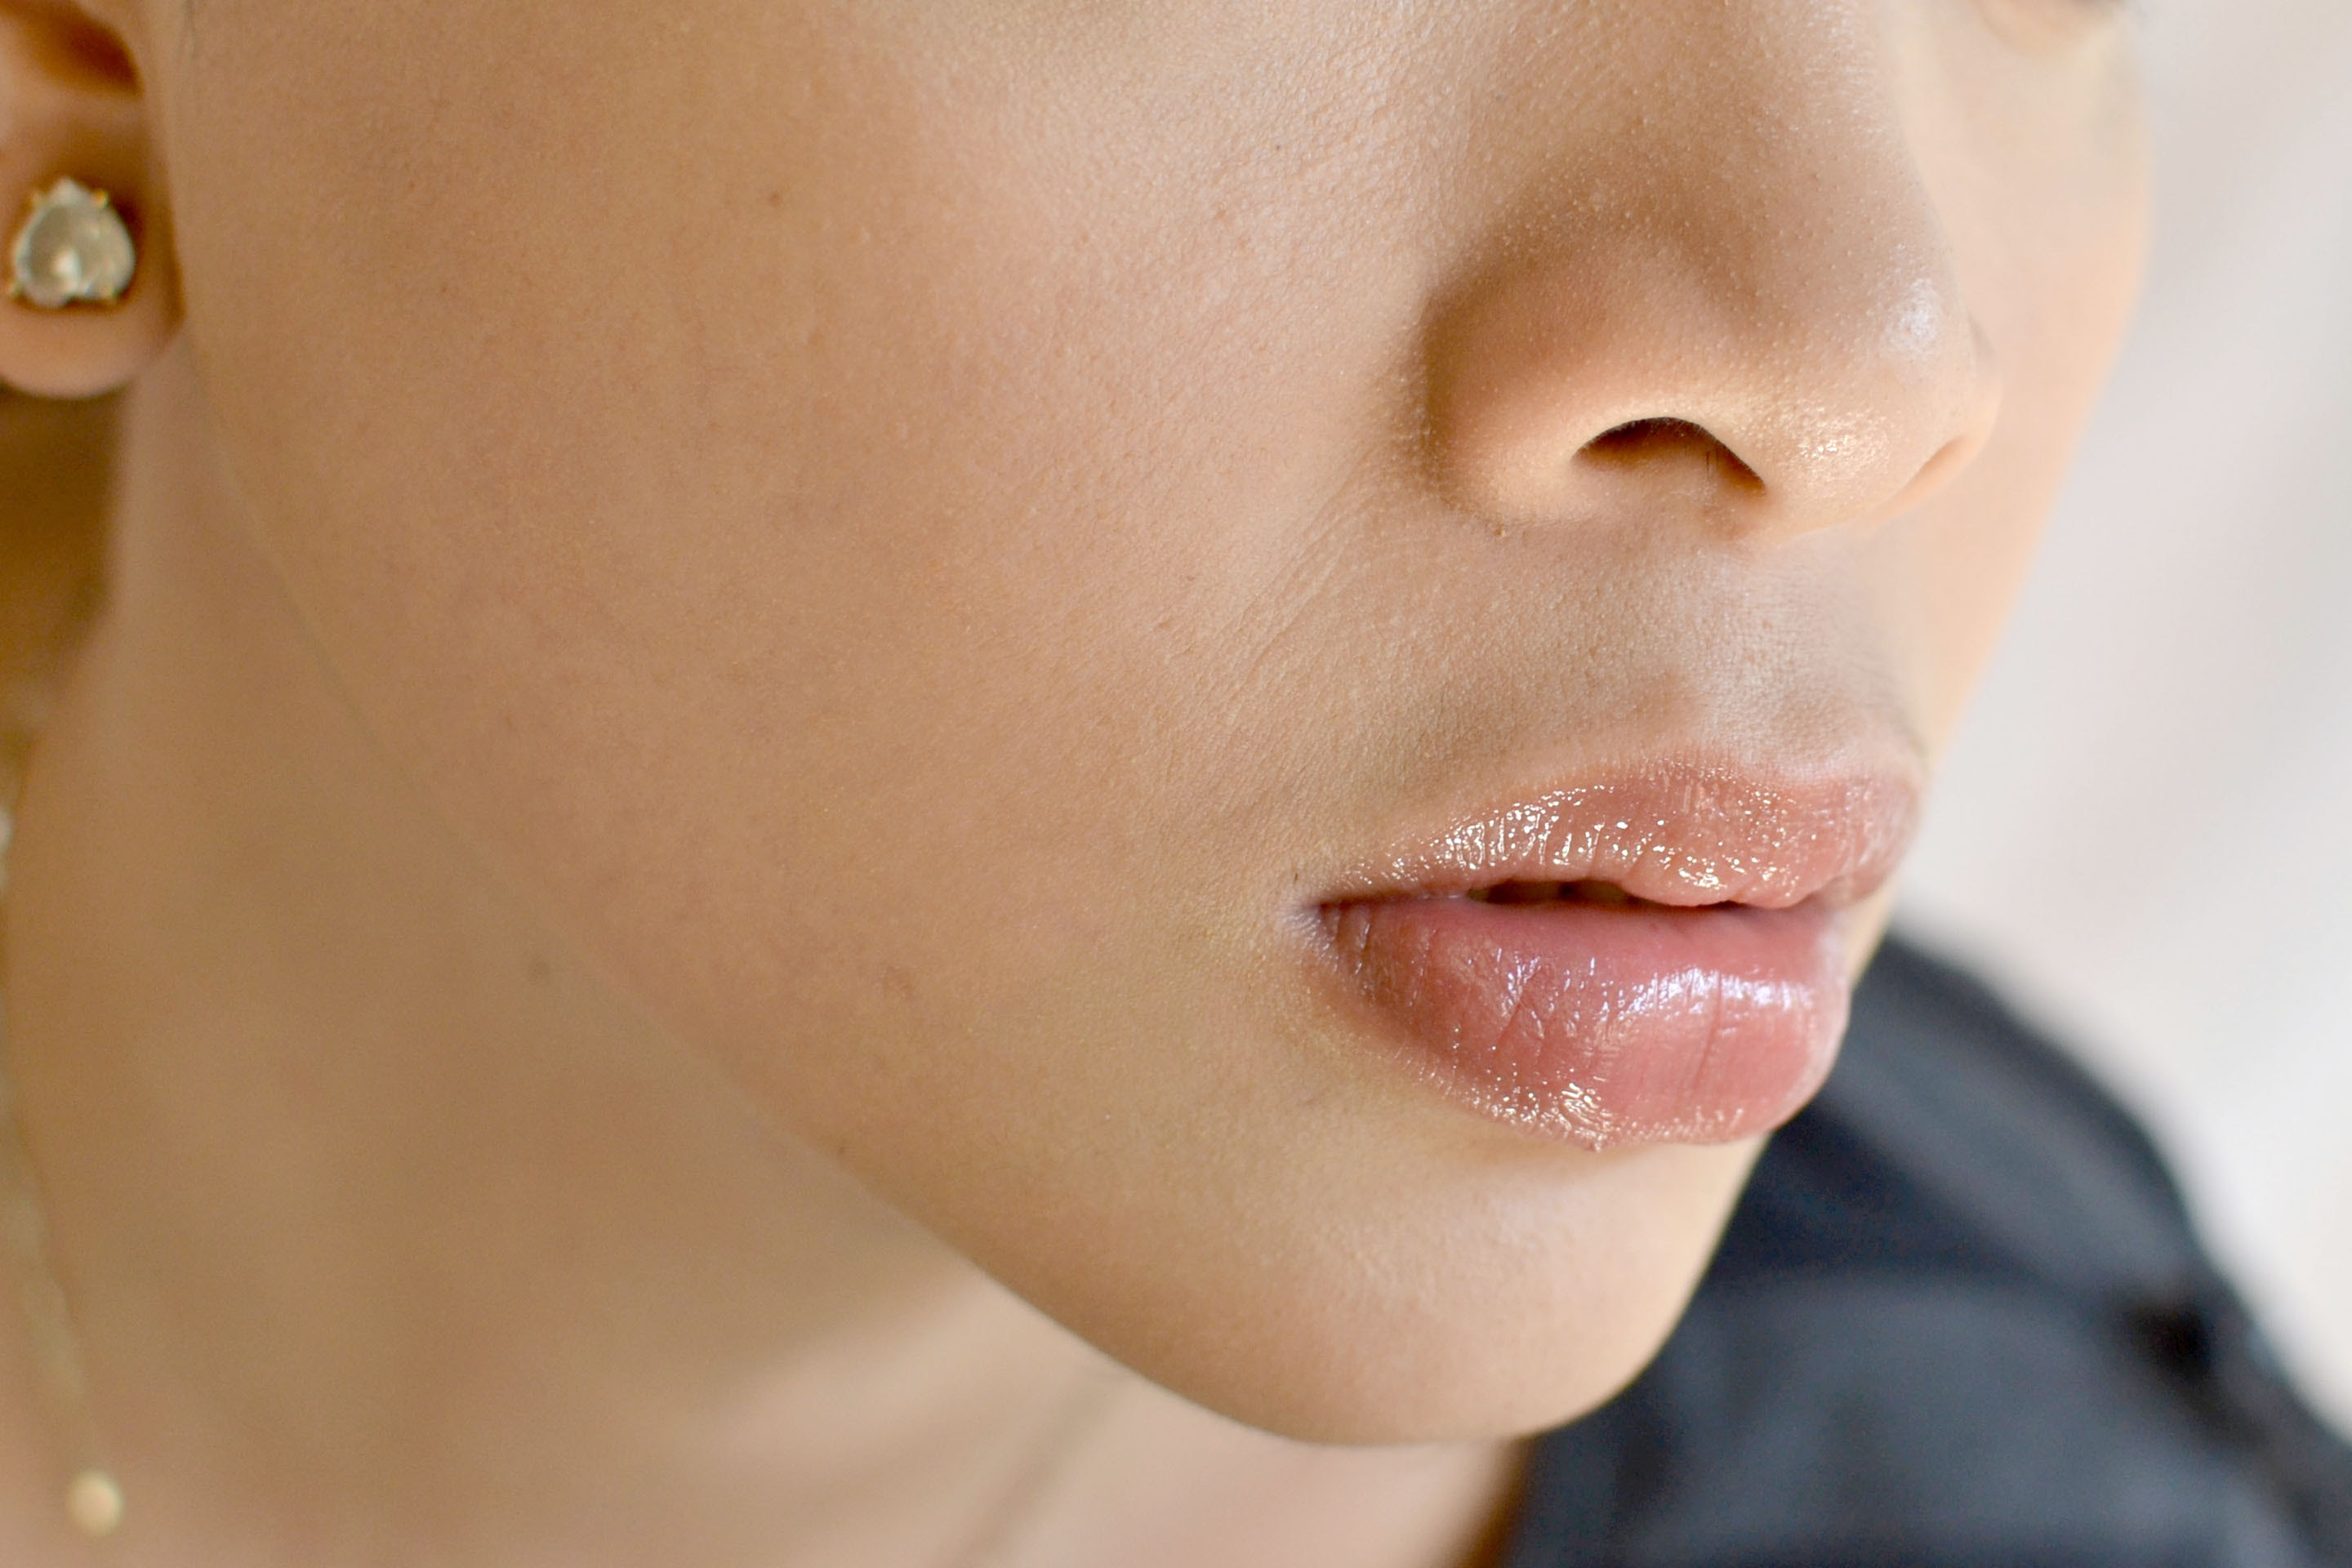 Lipstick that plumps your lips